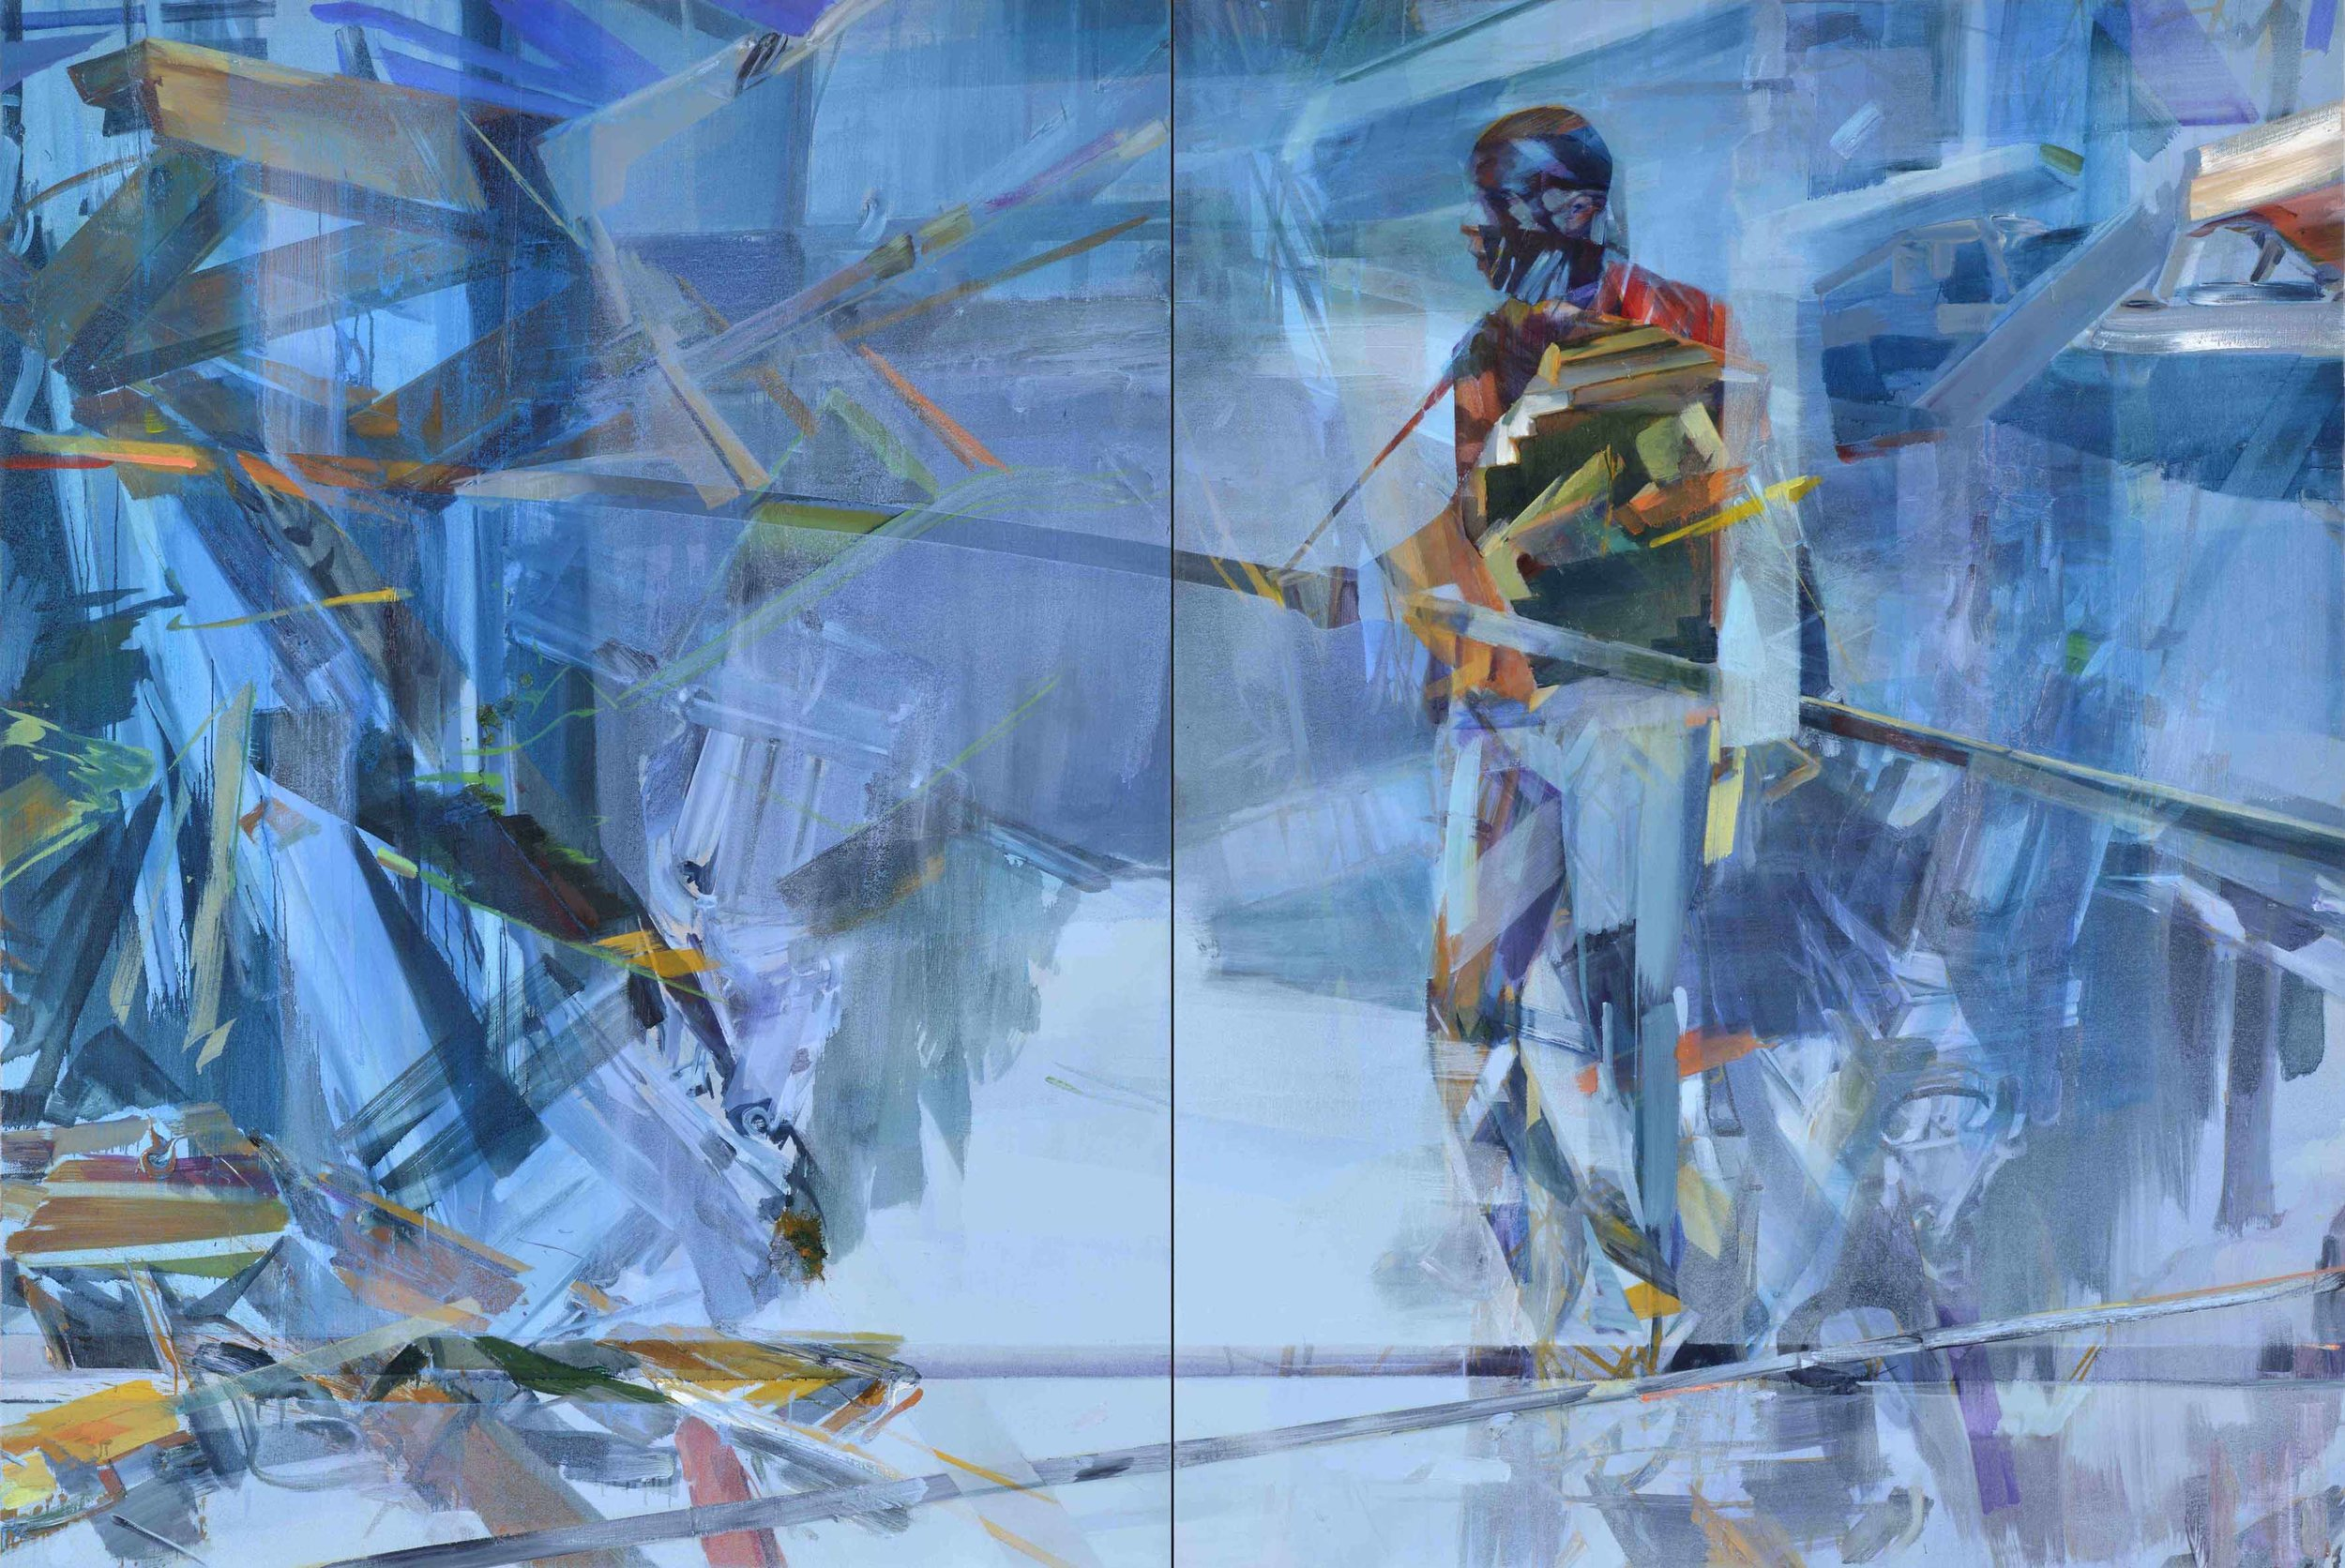 Timeline, 2015, oil and alkyd on canvas, 200 x 300cm (diptych)